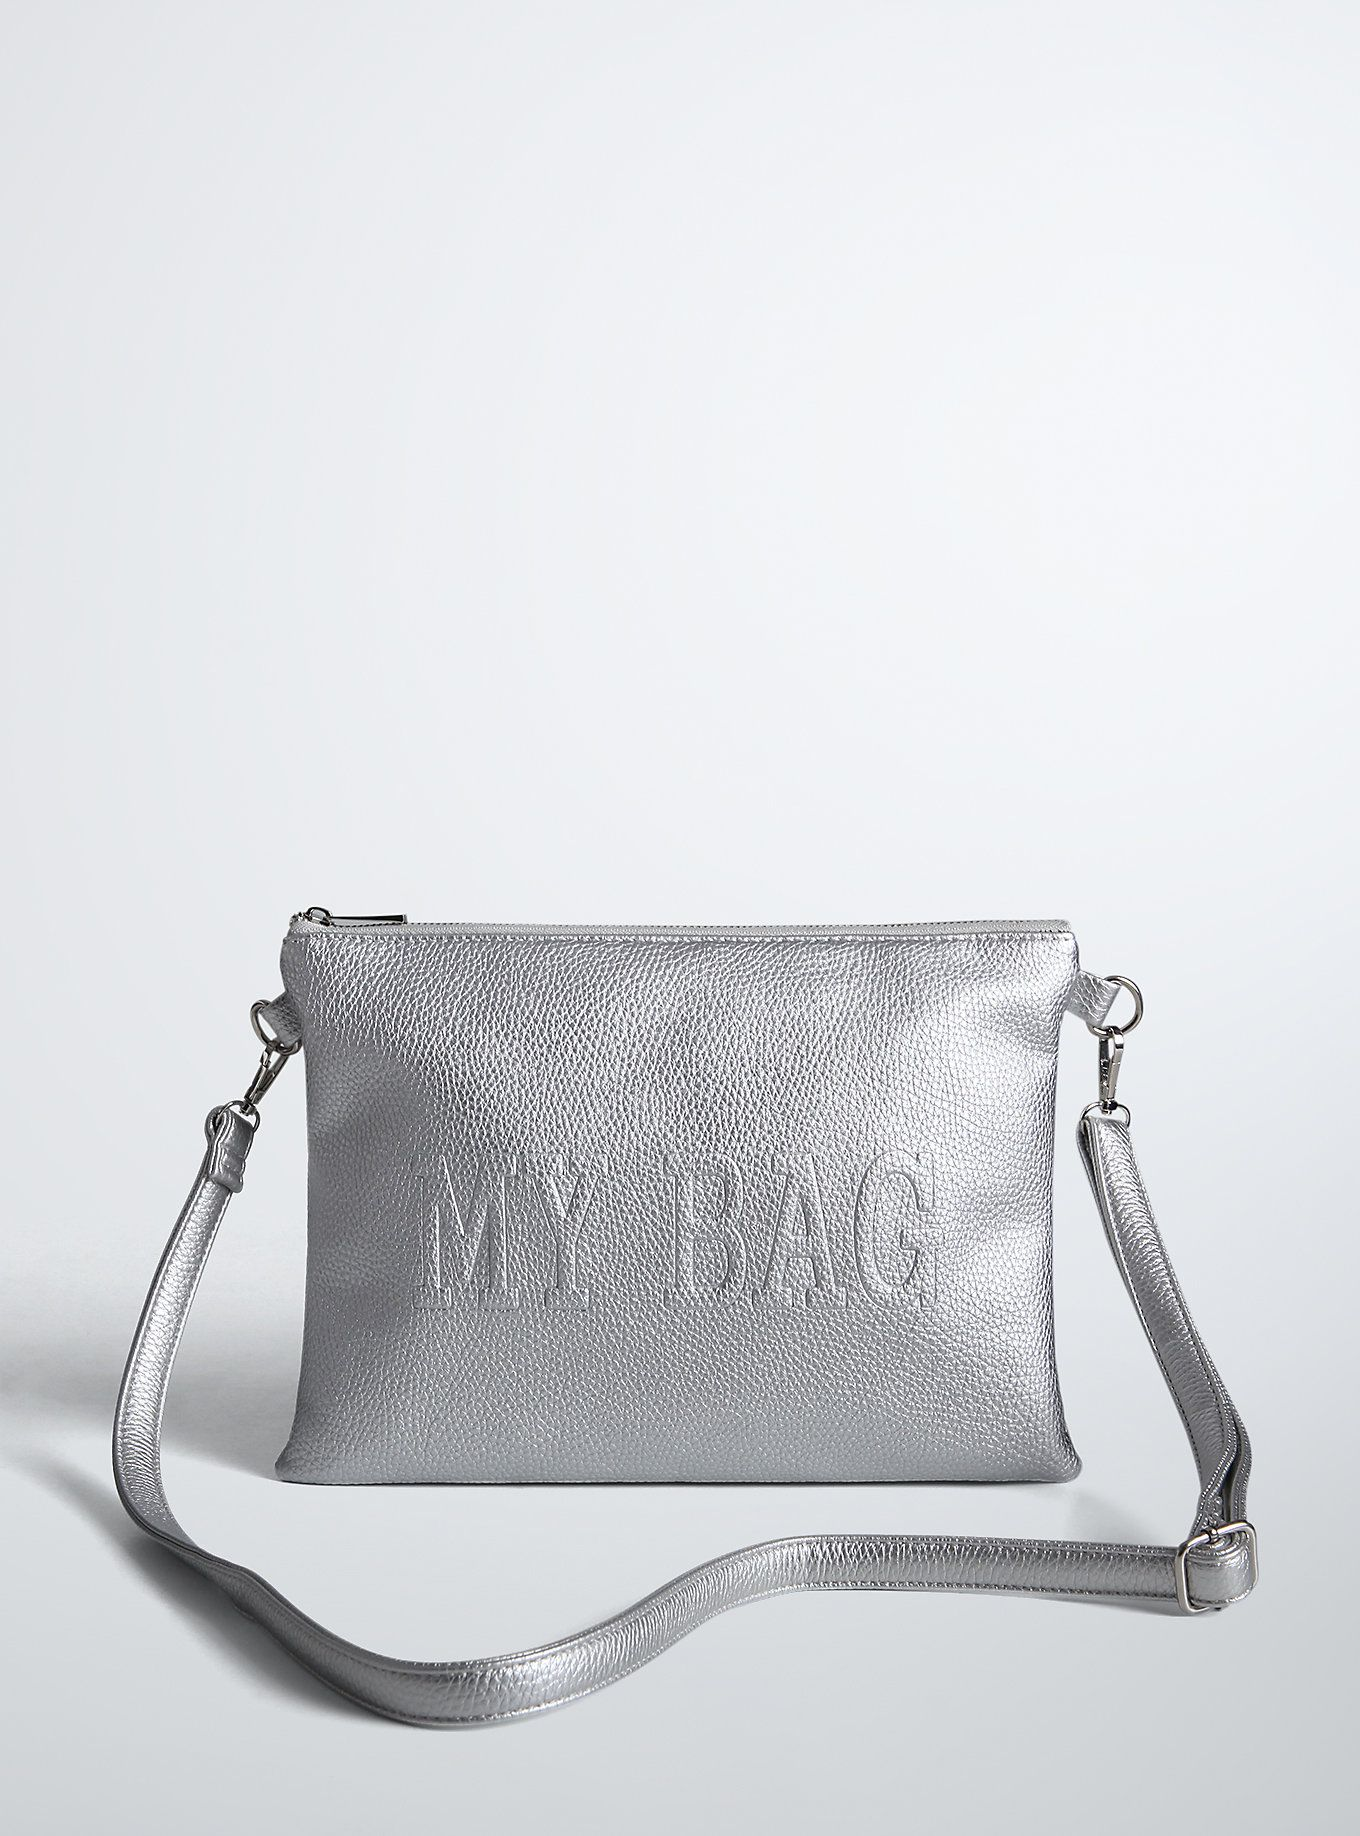 """<p>Hands off! No one will ever be able to steal your look with this clutch. Textured silver tone metallic faux leather covers the roomy design. One side states: """"my bag""""; the other: """"don't touch""""."""